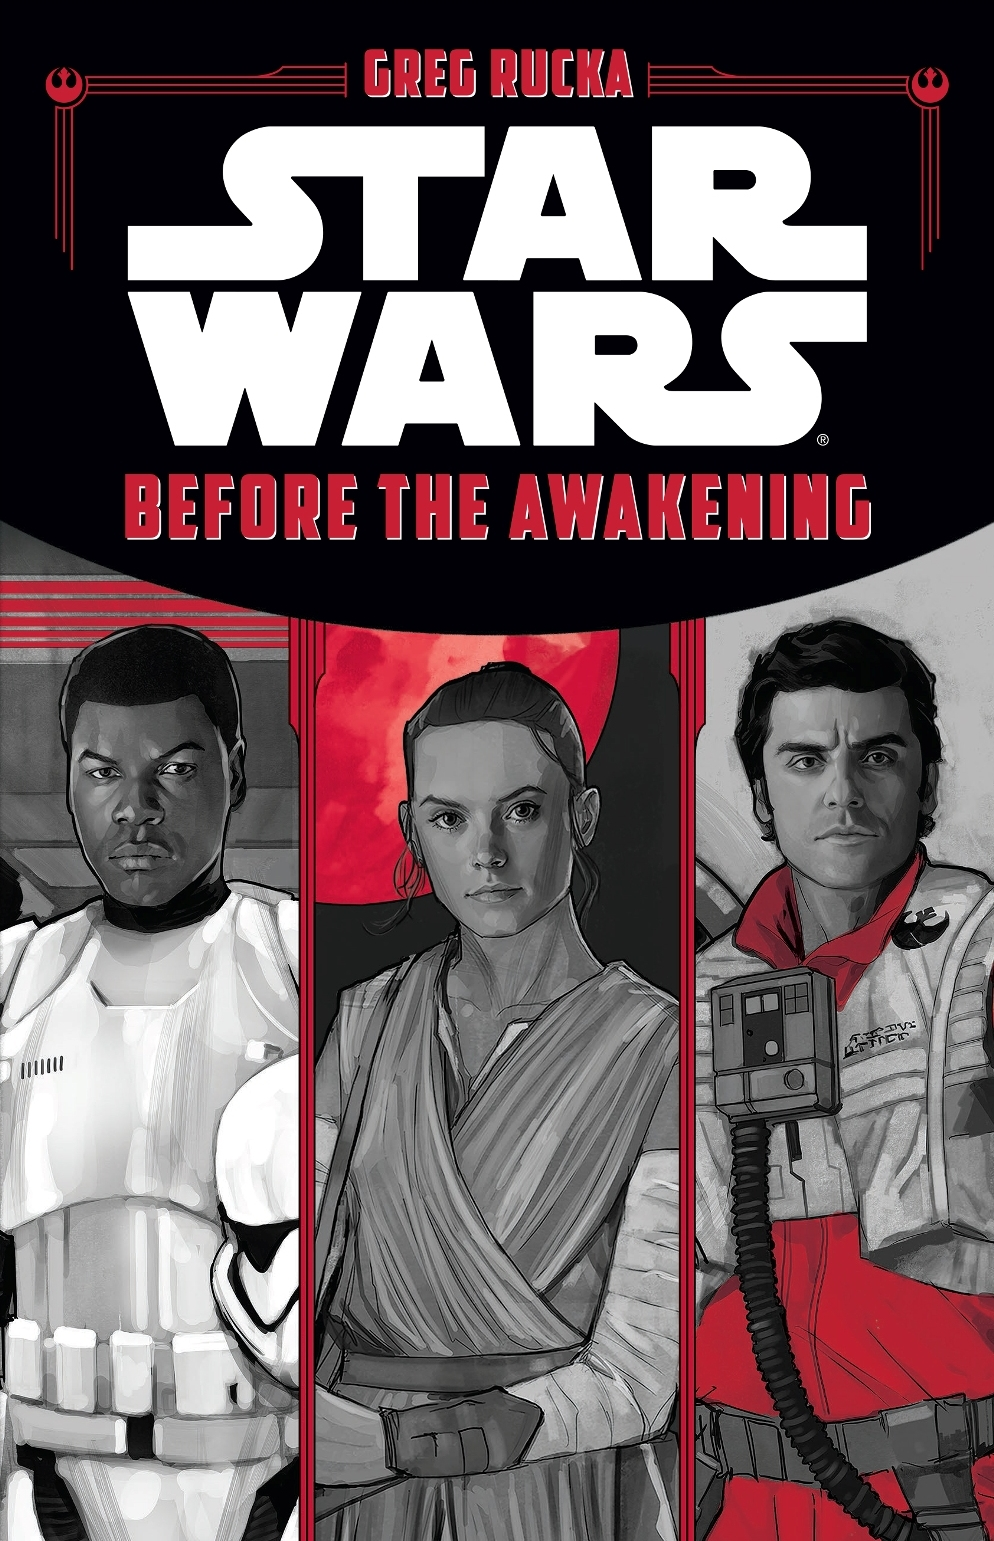 'Before the Awakening' by Greg Rucka (reviewed by Skuldren)